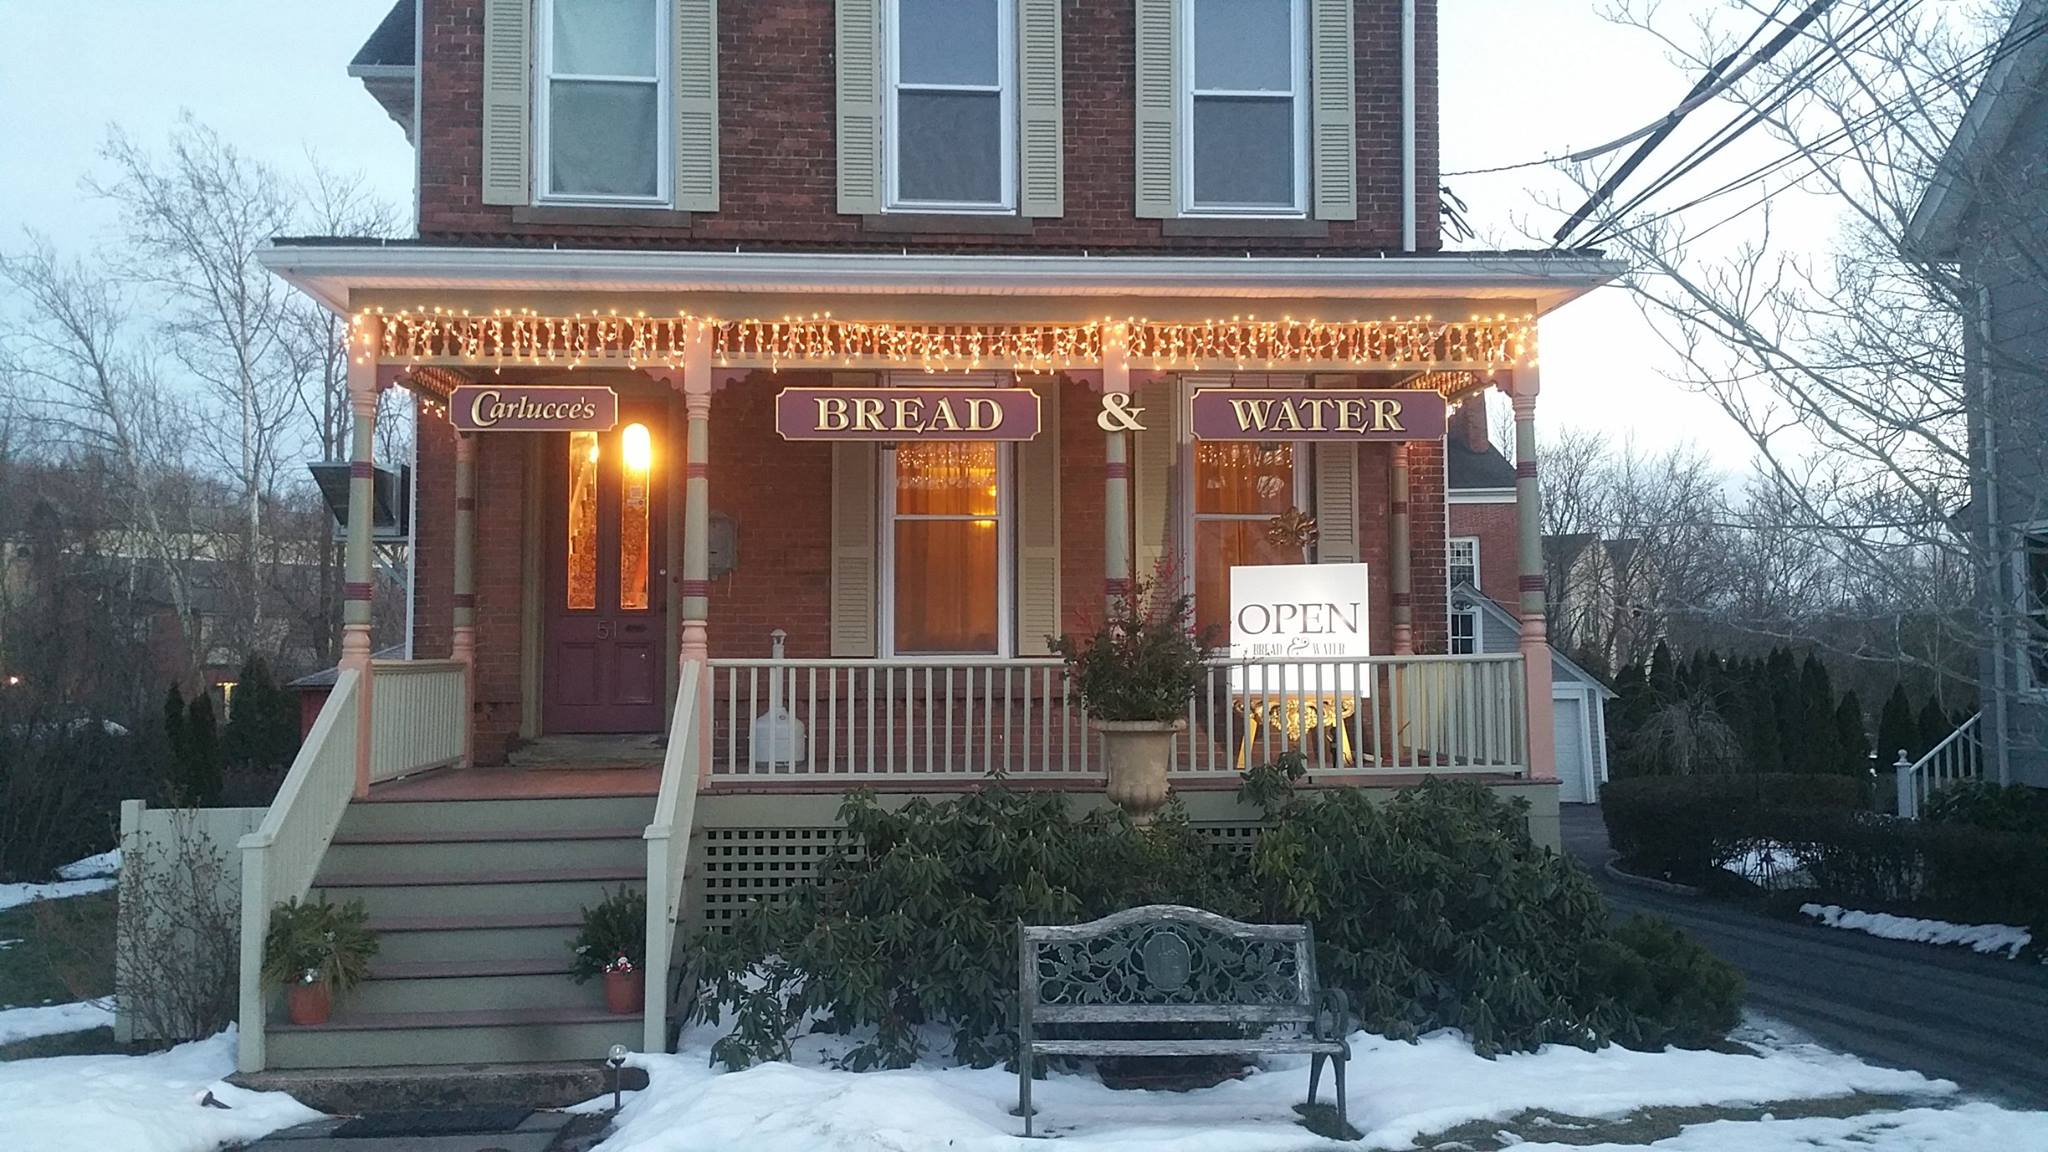 Bread And Water Restaurant In Connecticut Was Formerly A